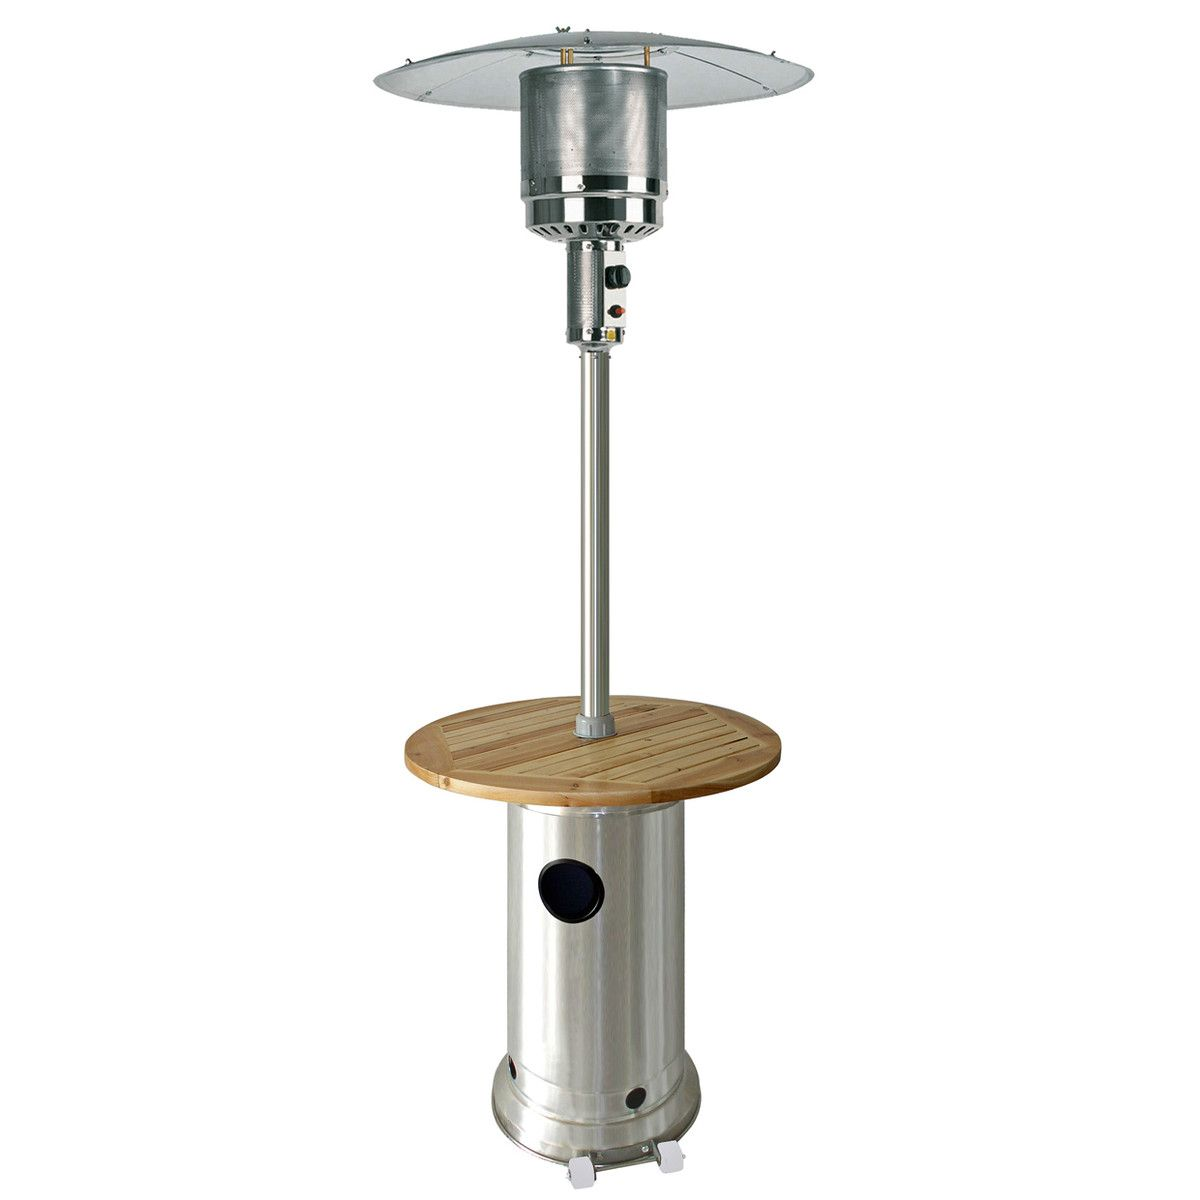 Wood Table Top For The Heater Propane Patio Heater Patio Heater Gas Patio Heater